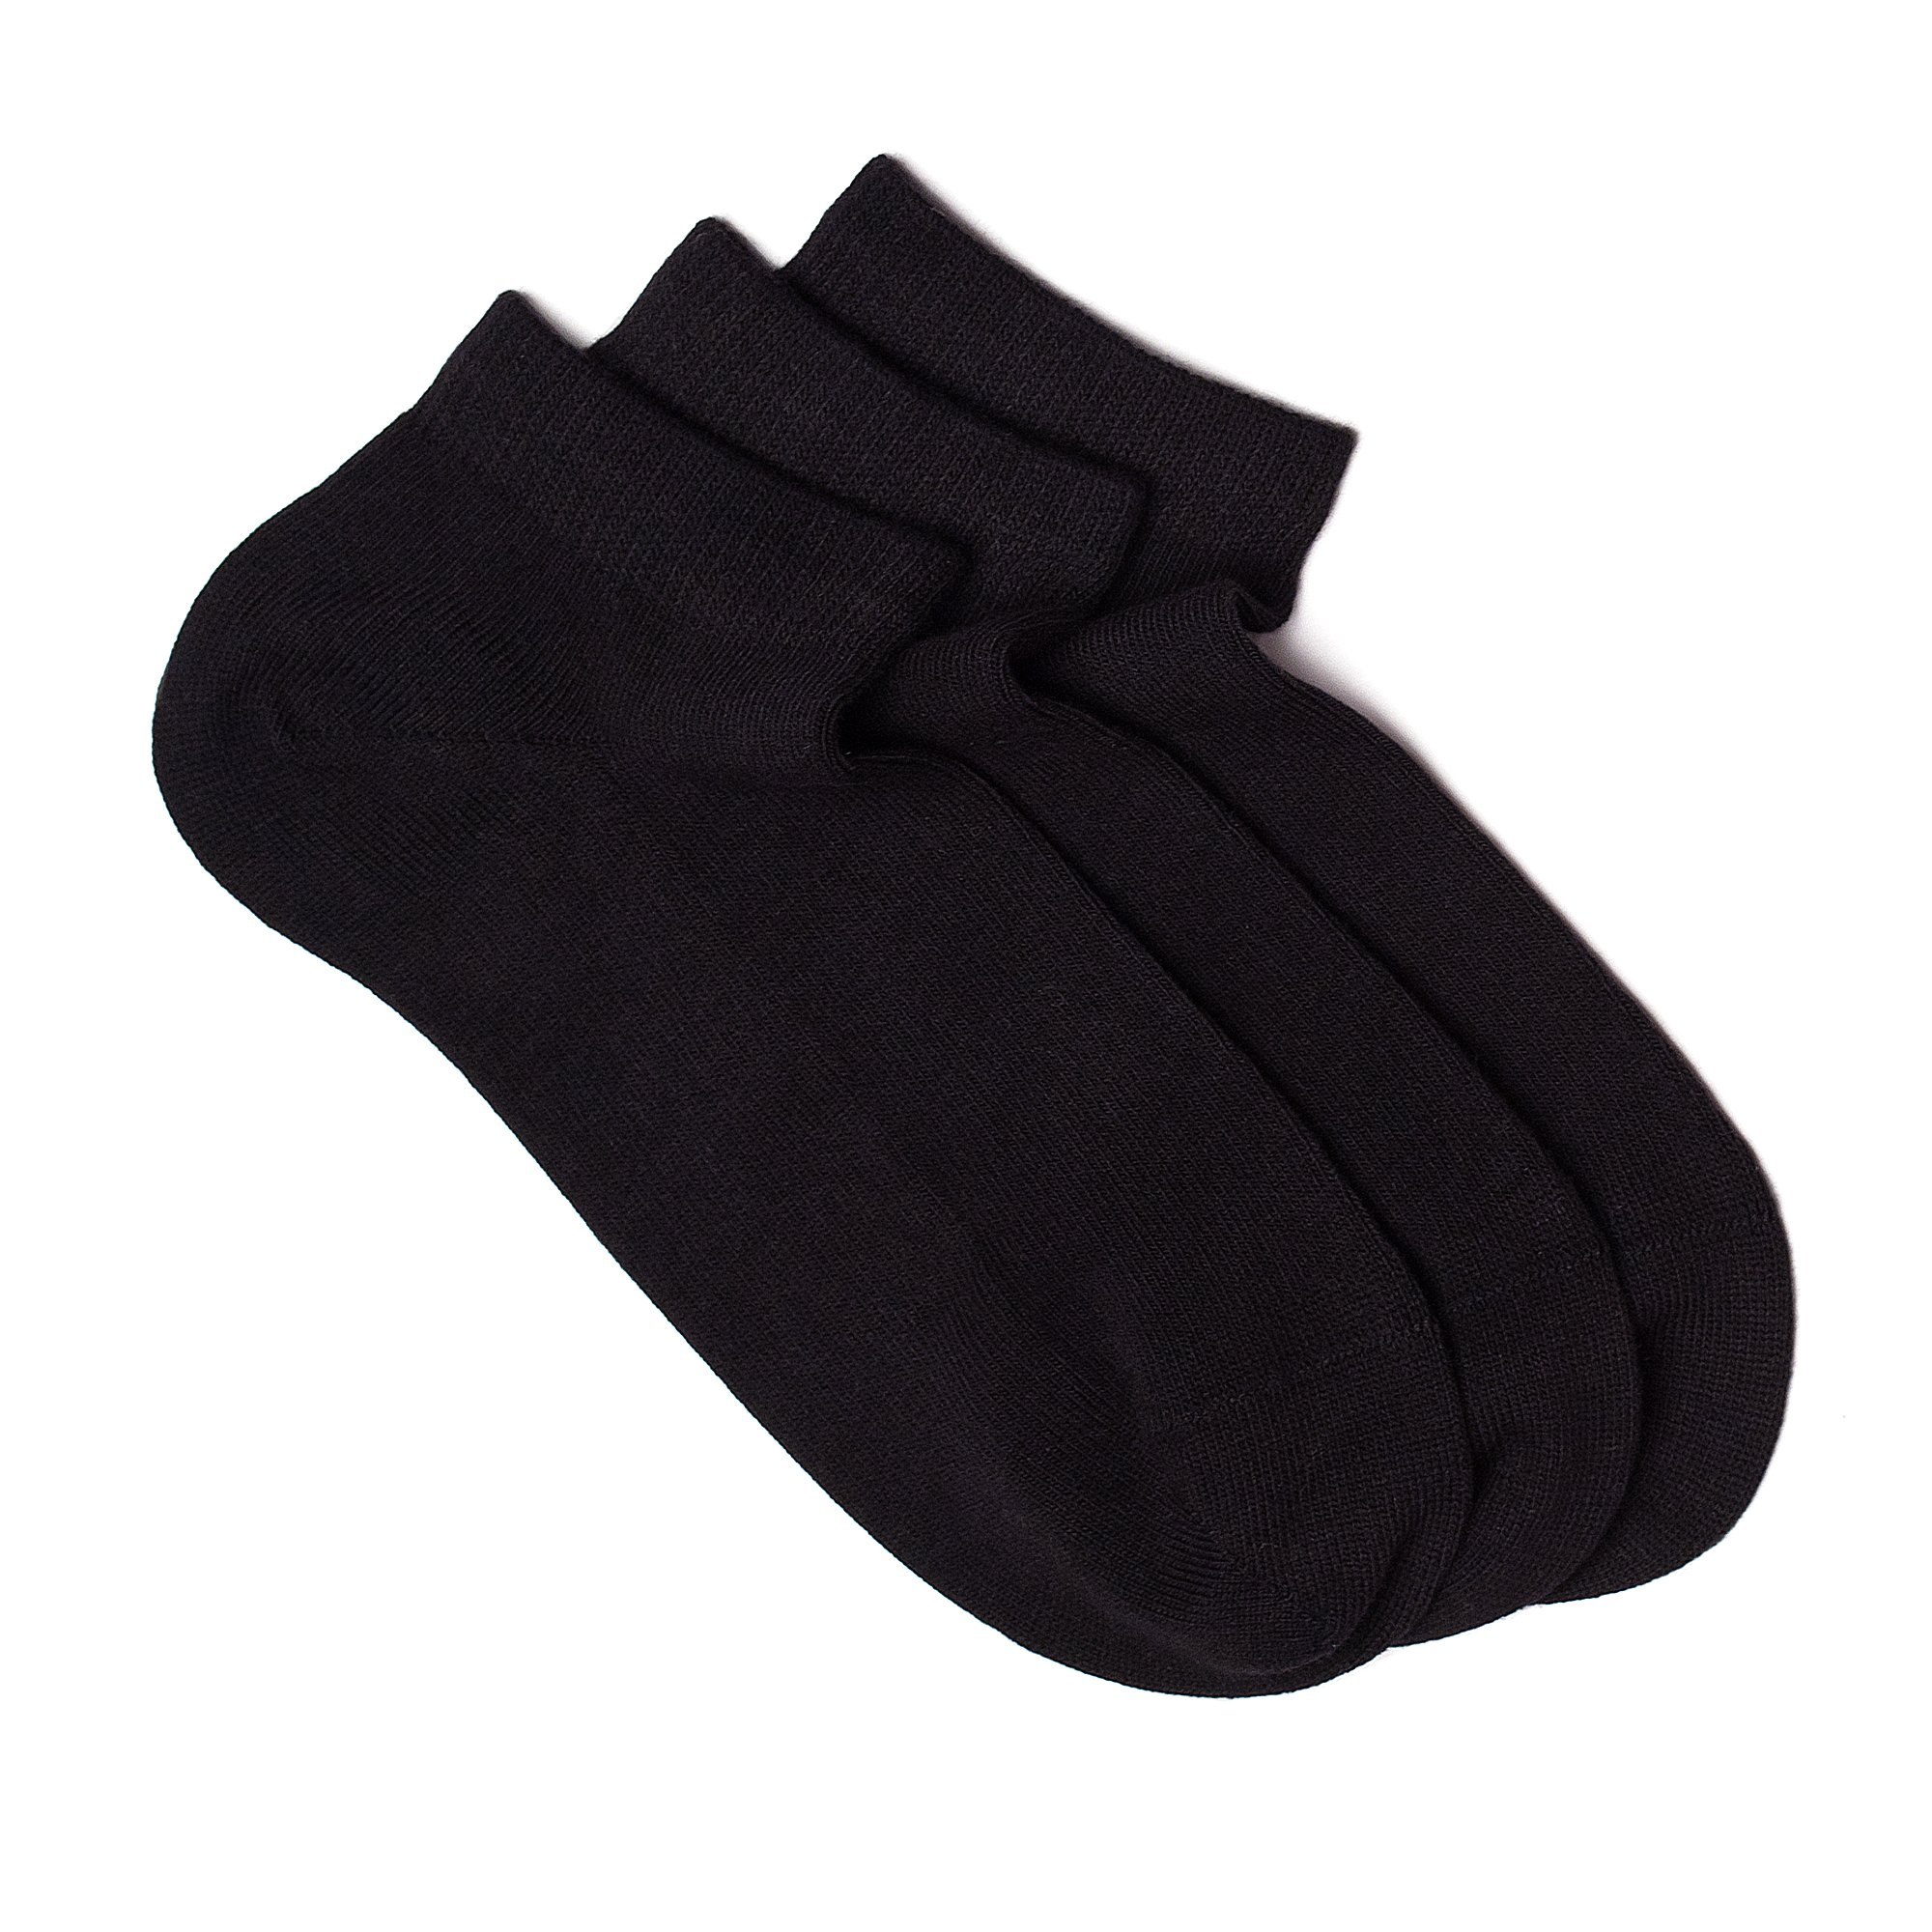 Women's Low Cut Socks, 3 Pairs Pack. Seamless Fit, Fine Combed Cotton, Reinforced Sole by iNicety (Image #1)